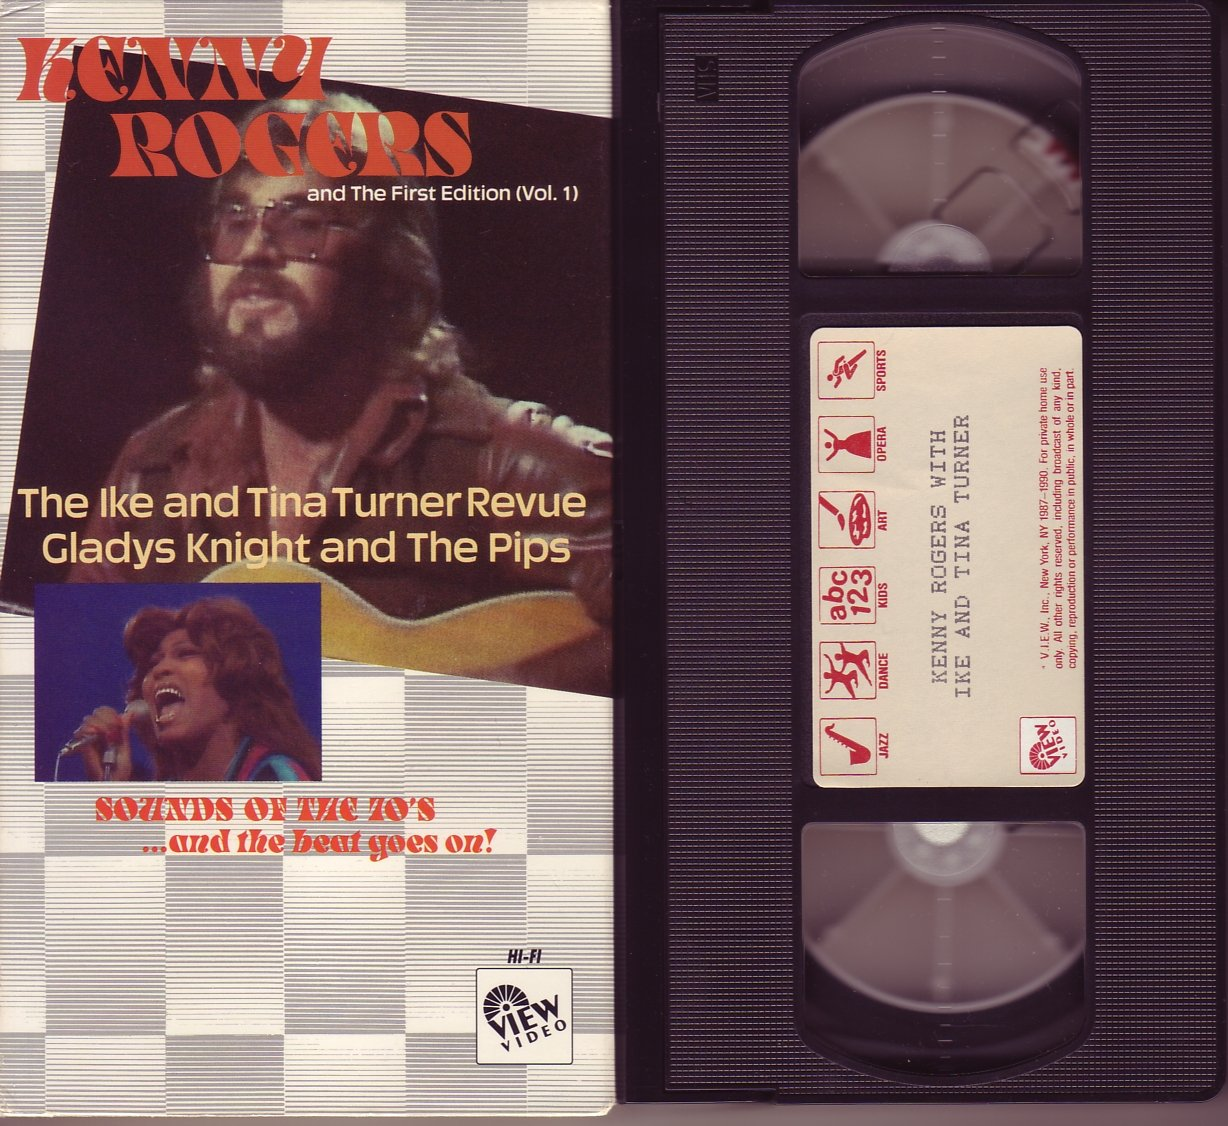 KENNY ROGERS THE FIRST EDITION V.1 TINA TURNER REVUE GLADYS KNIGHT and THE PIPS